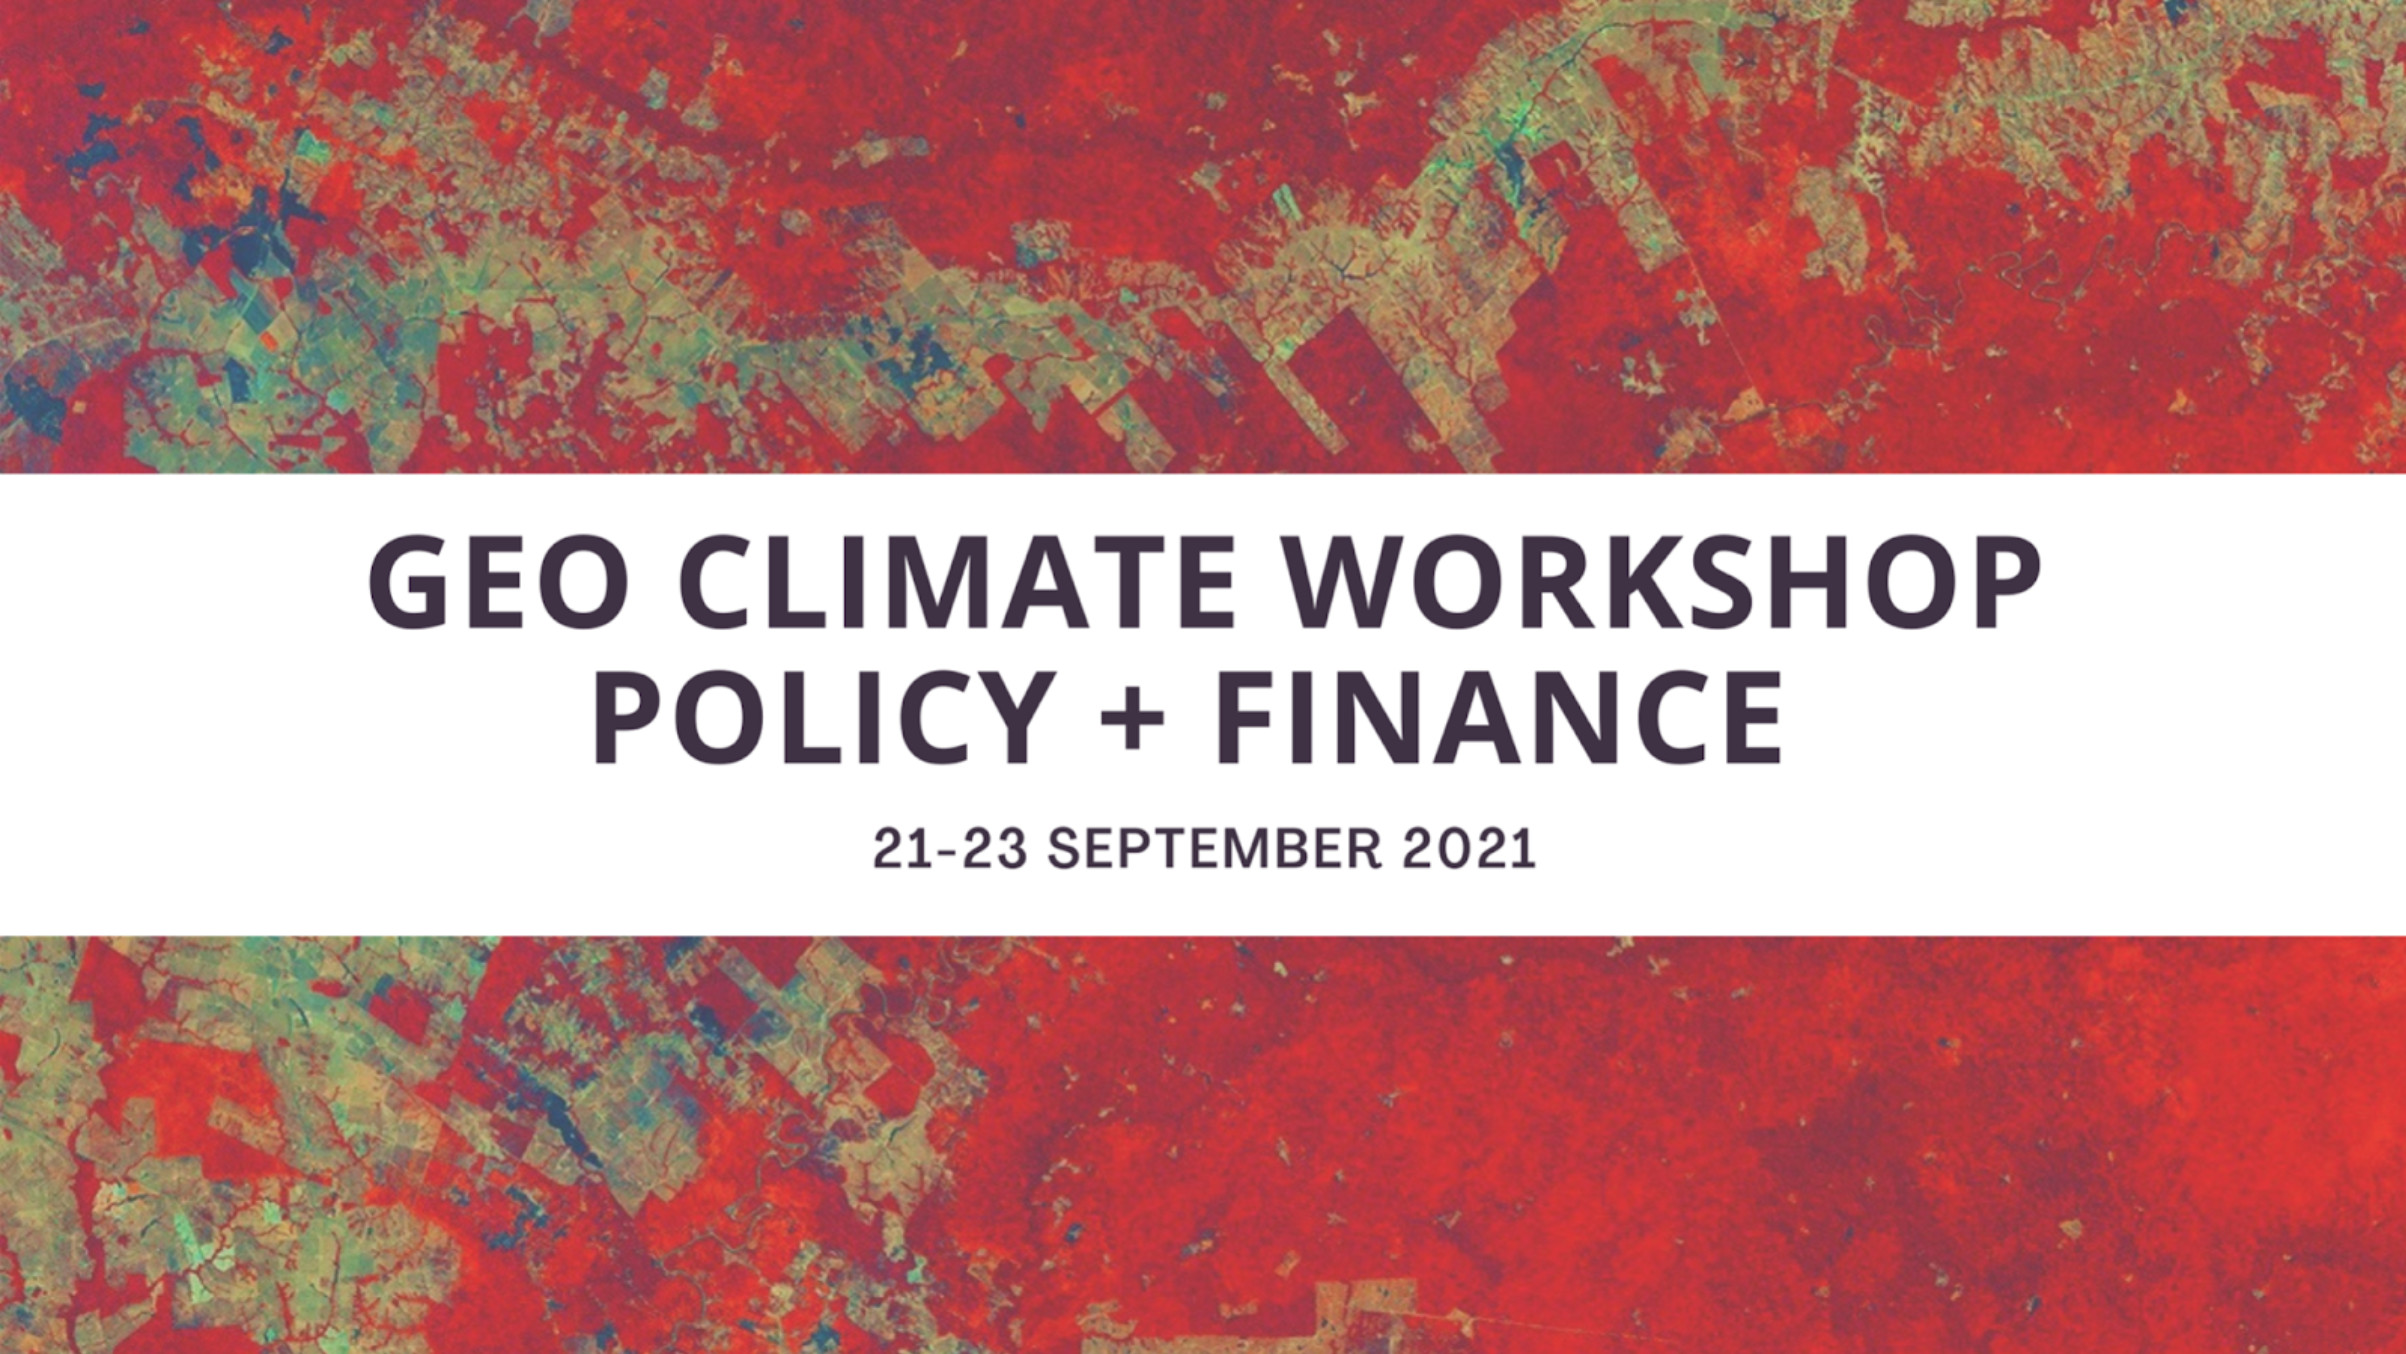 Registrations open for the GEO Climate Policy and Finance Workshop, 21-23 September 2021